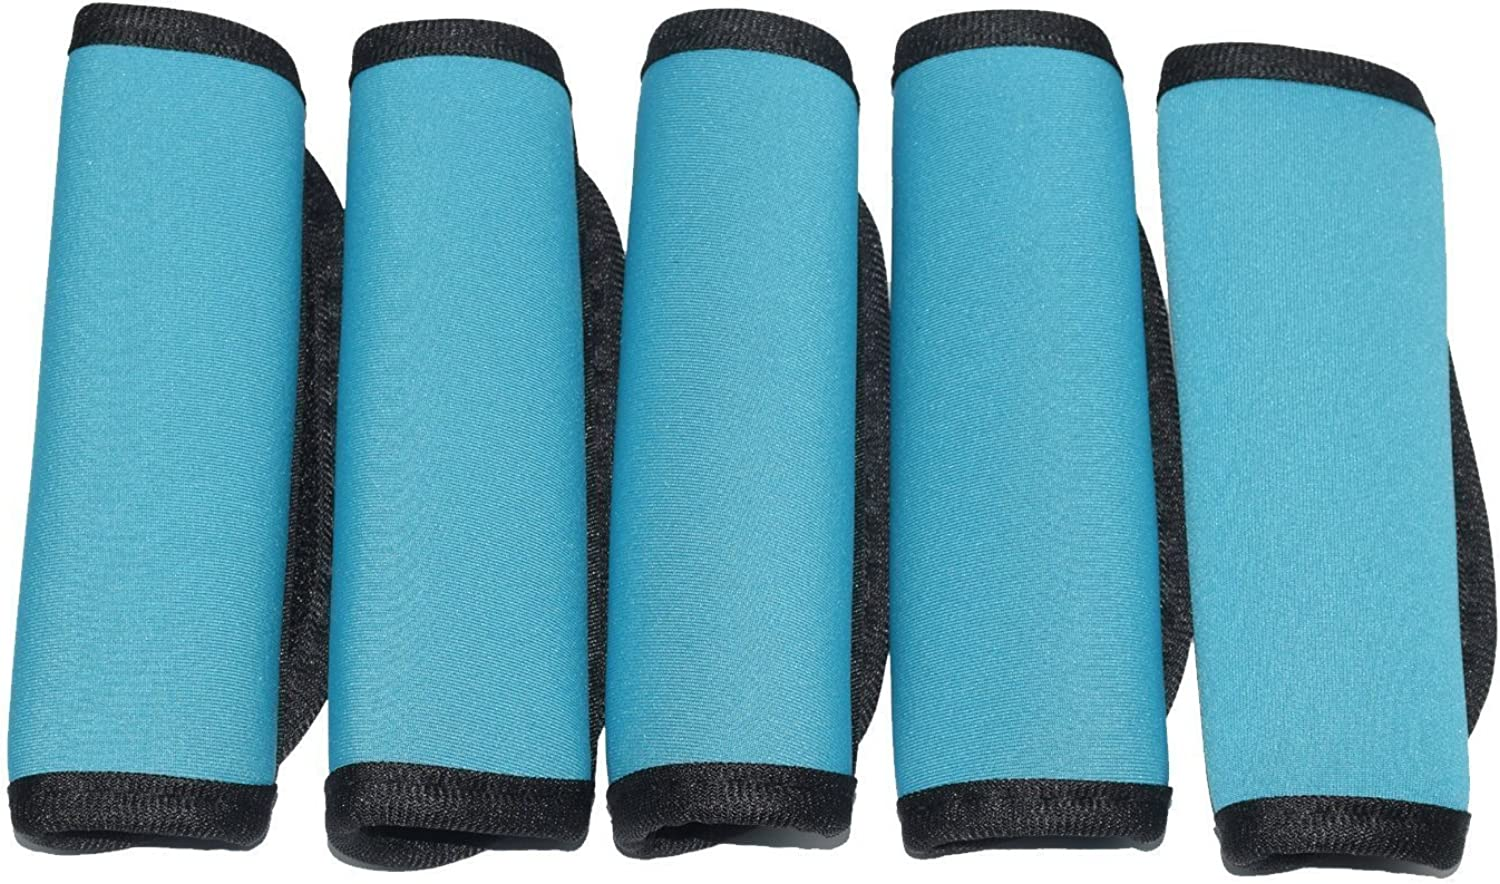 Orchidtent 5 Pack Soft Comfort Neoprene Water-Resistant Handle Wraps/Grip/Identifier/Hand Luggage for Travel Bag Luggage Suitcase (blue)